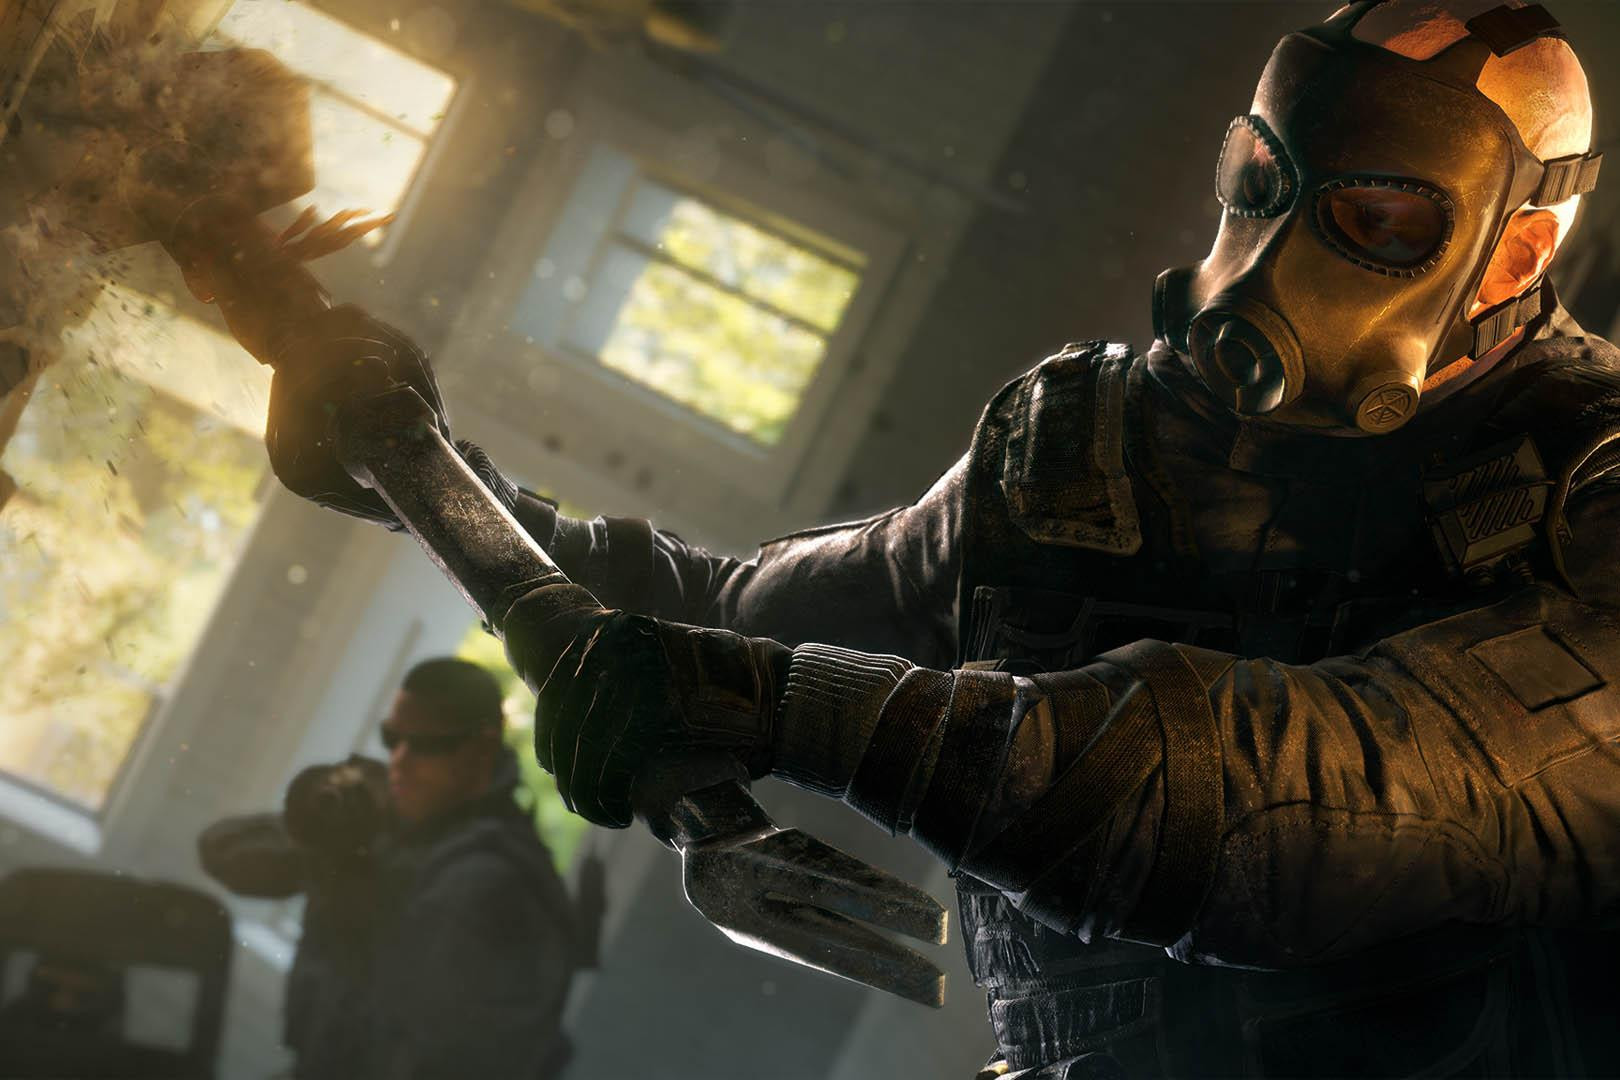 Xbox One owners can play 'Rainbow Six: Siege' for free through the weekend